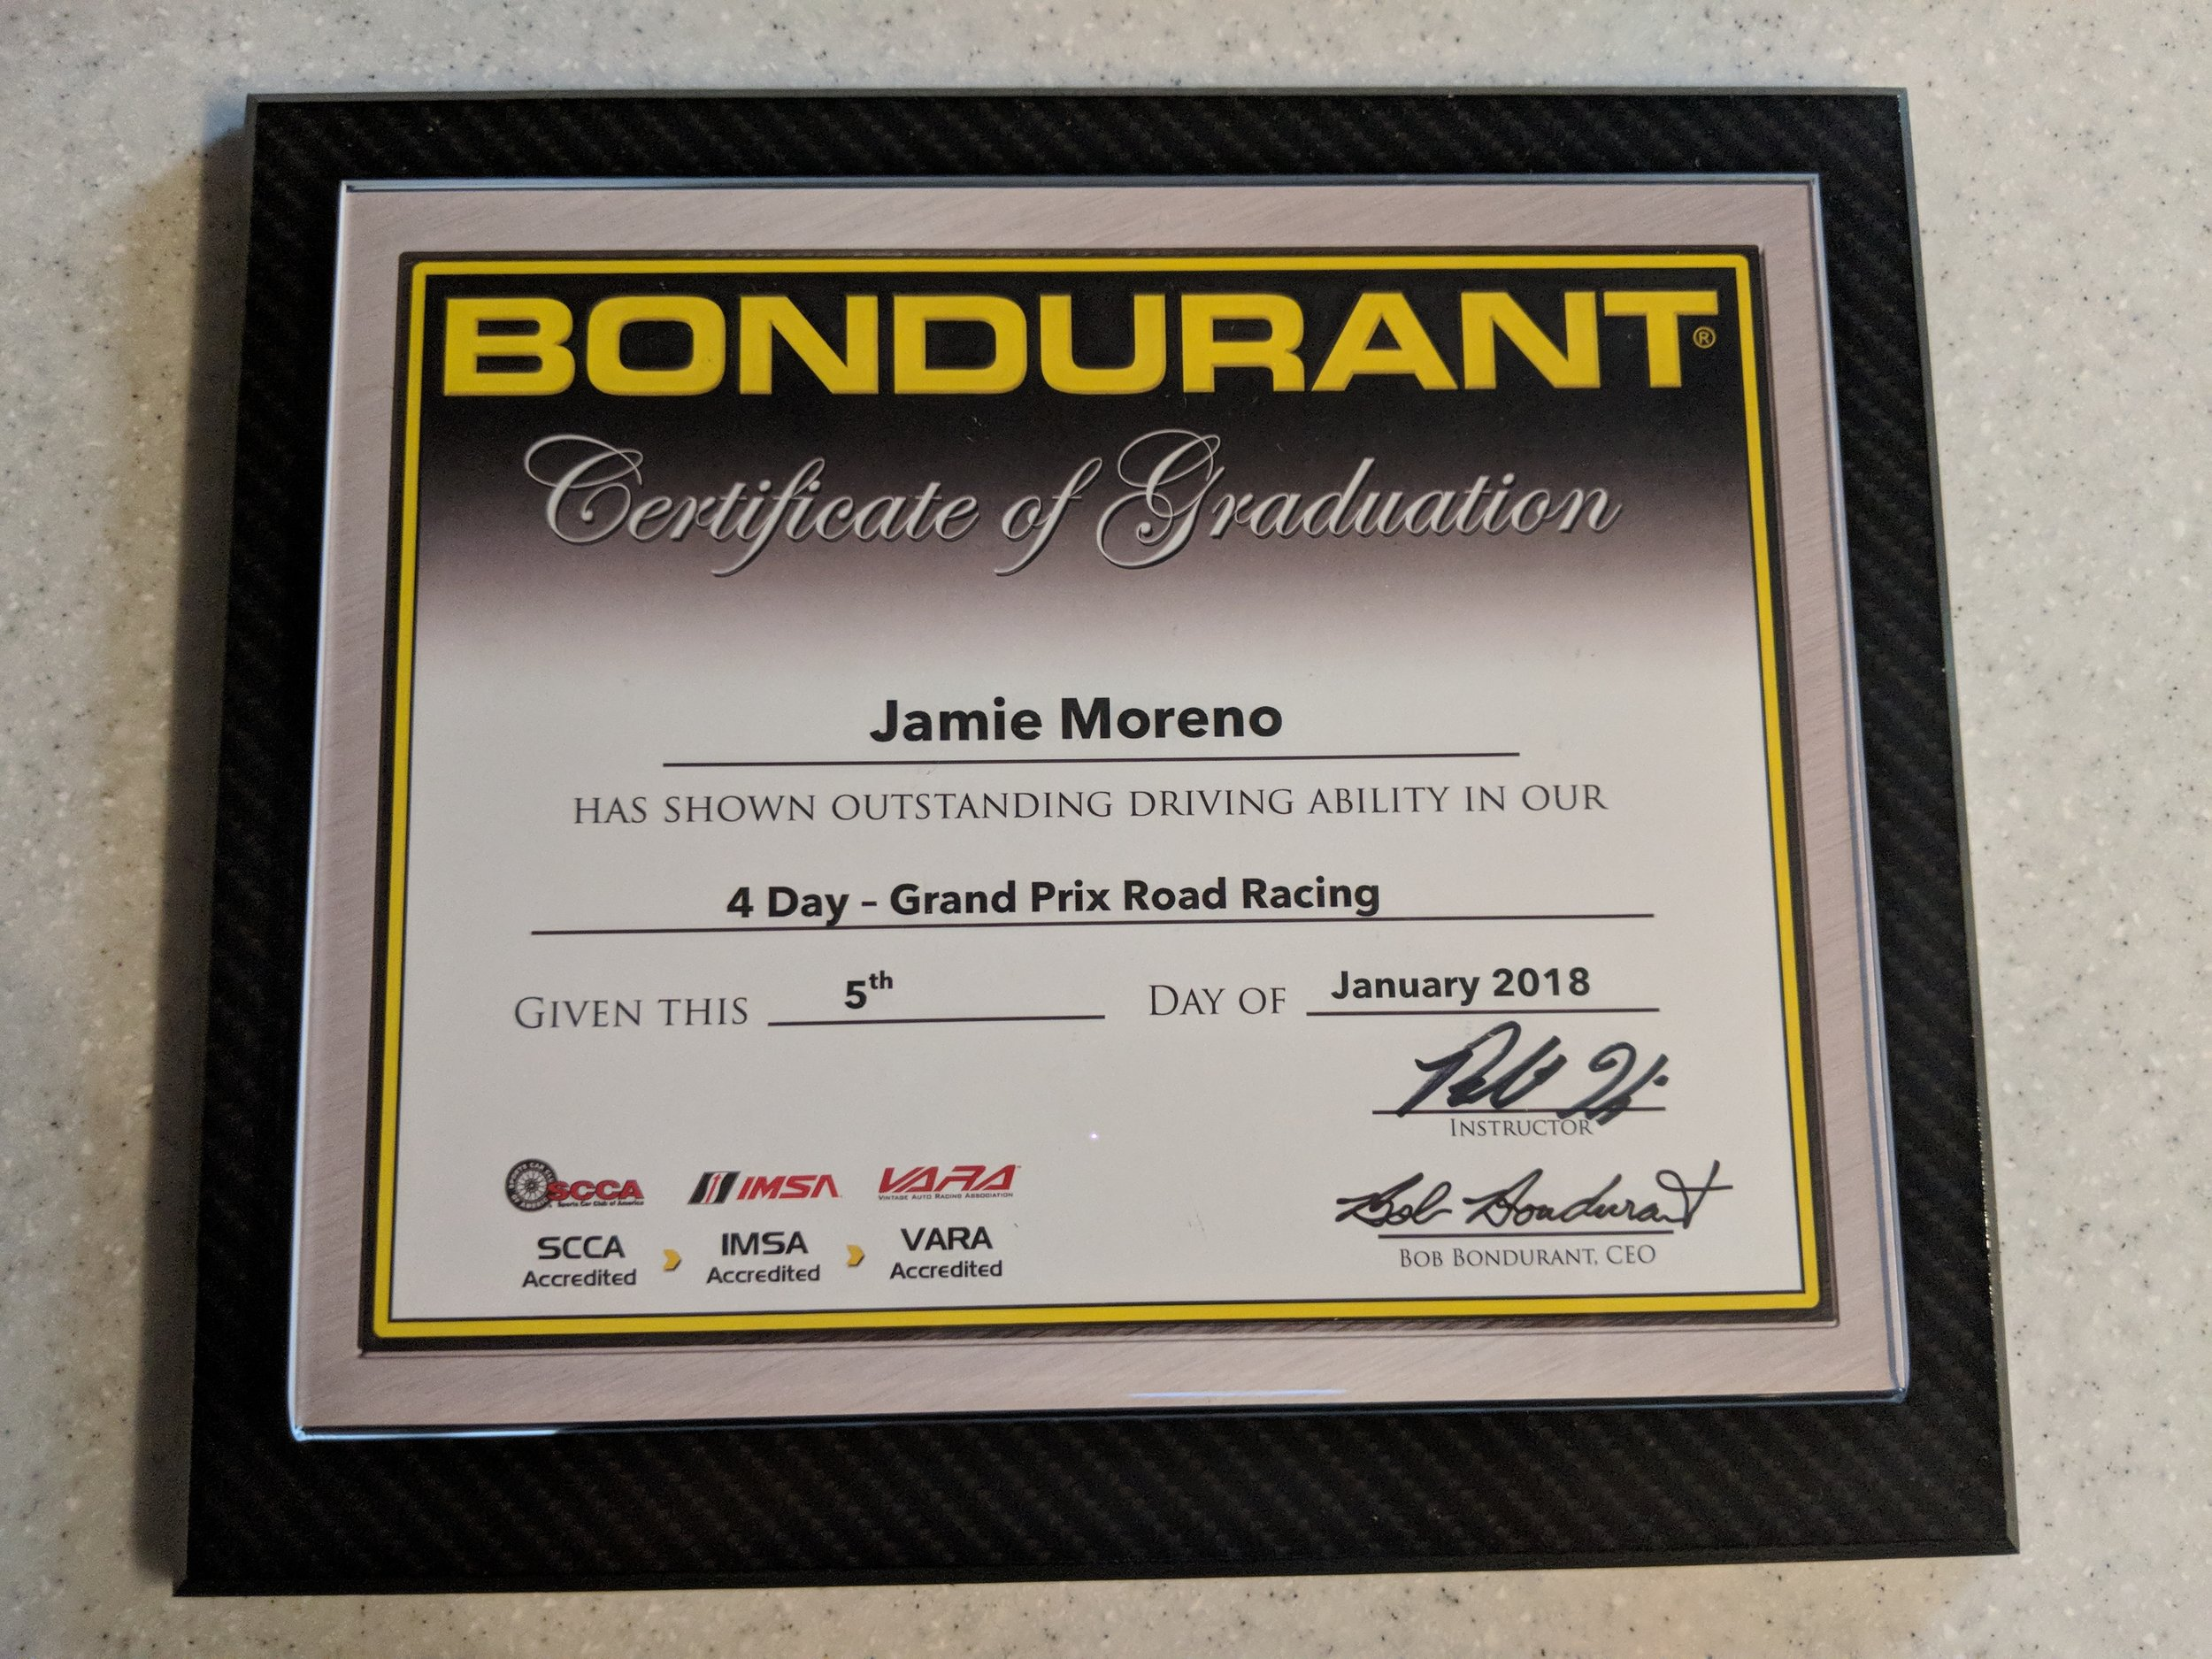 Bondurant_Certificate_of_Graduation